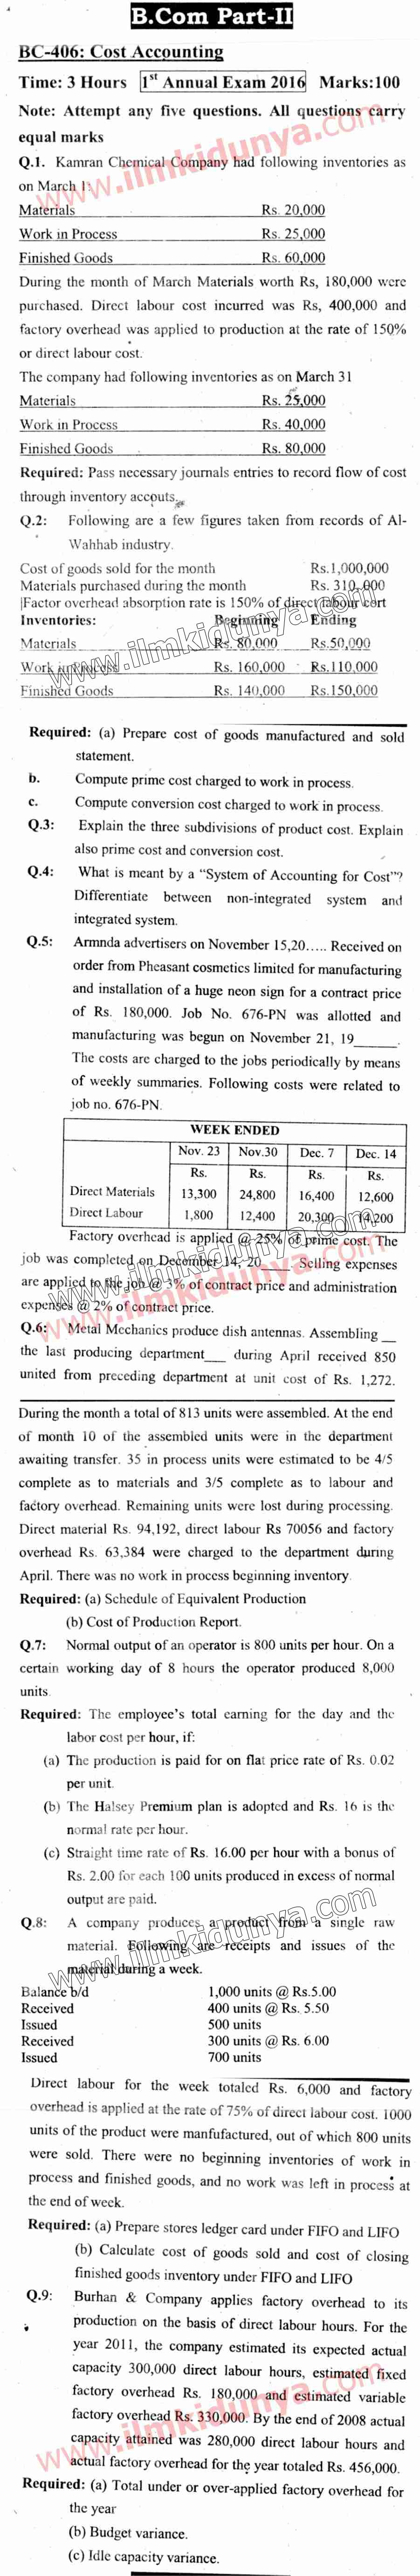 Past Papers Sargodha University 2016 BCom Part 2 Cost Accounting